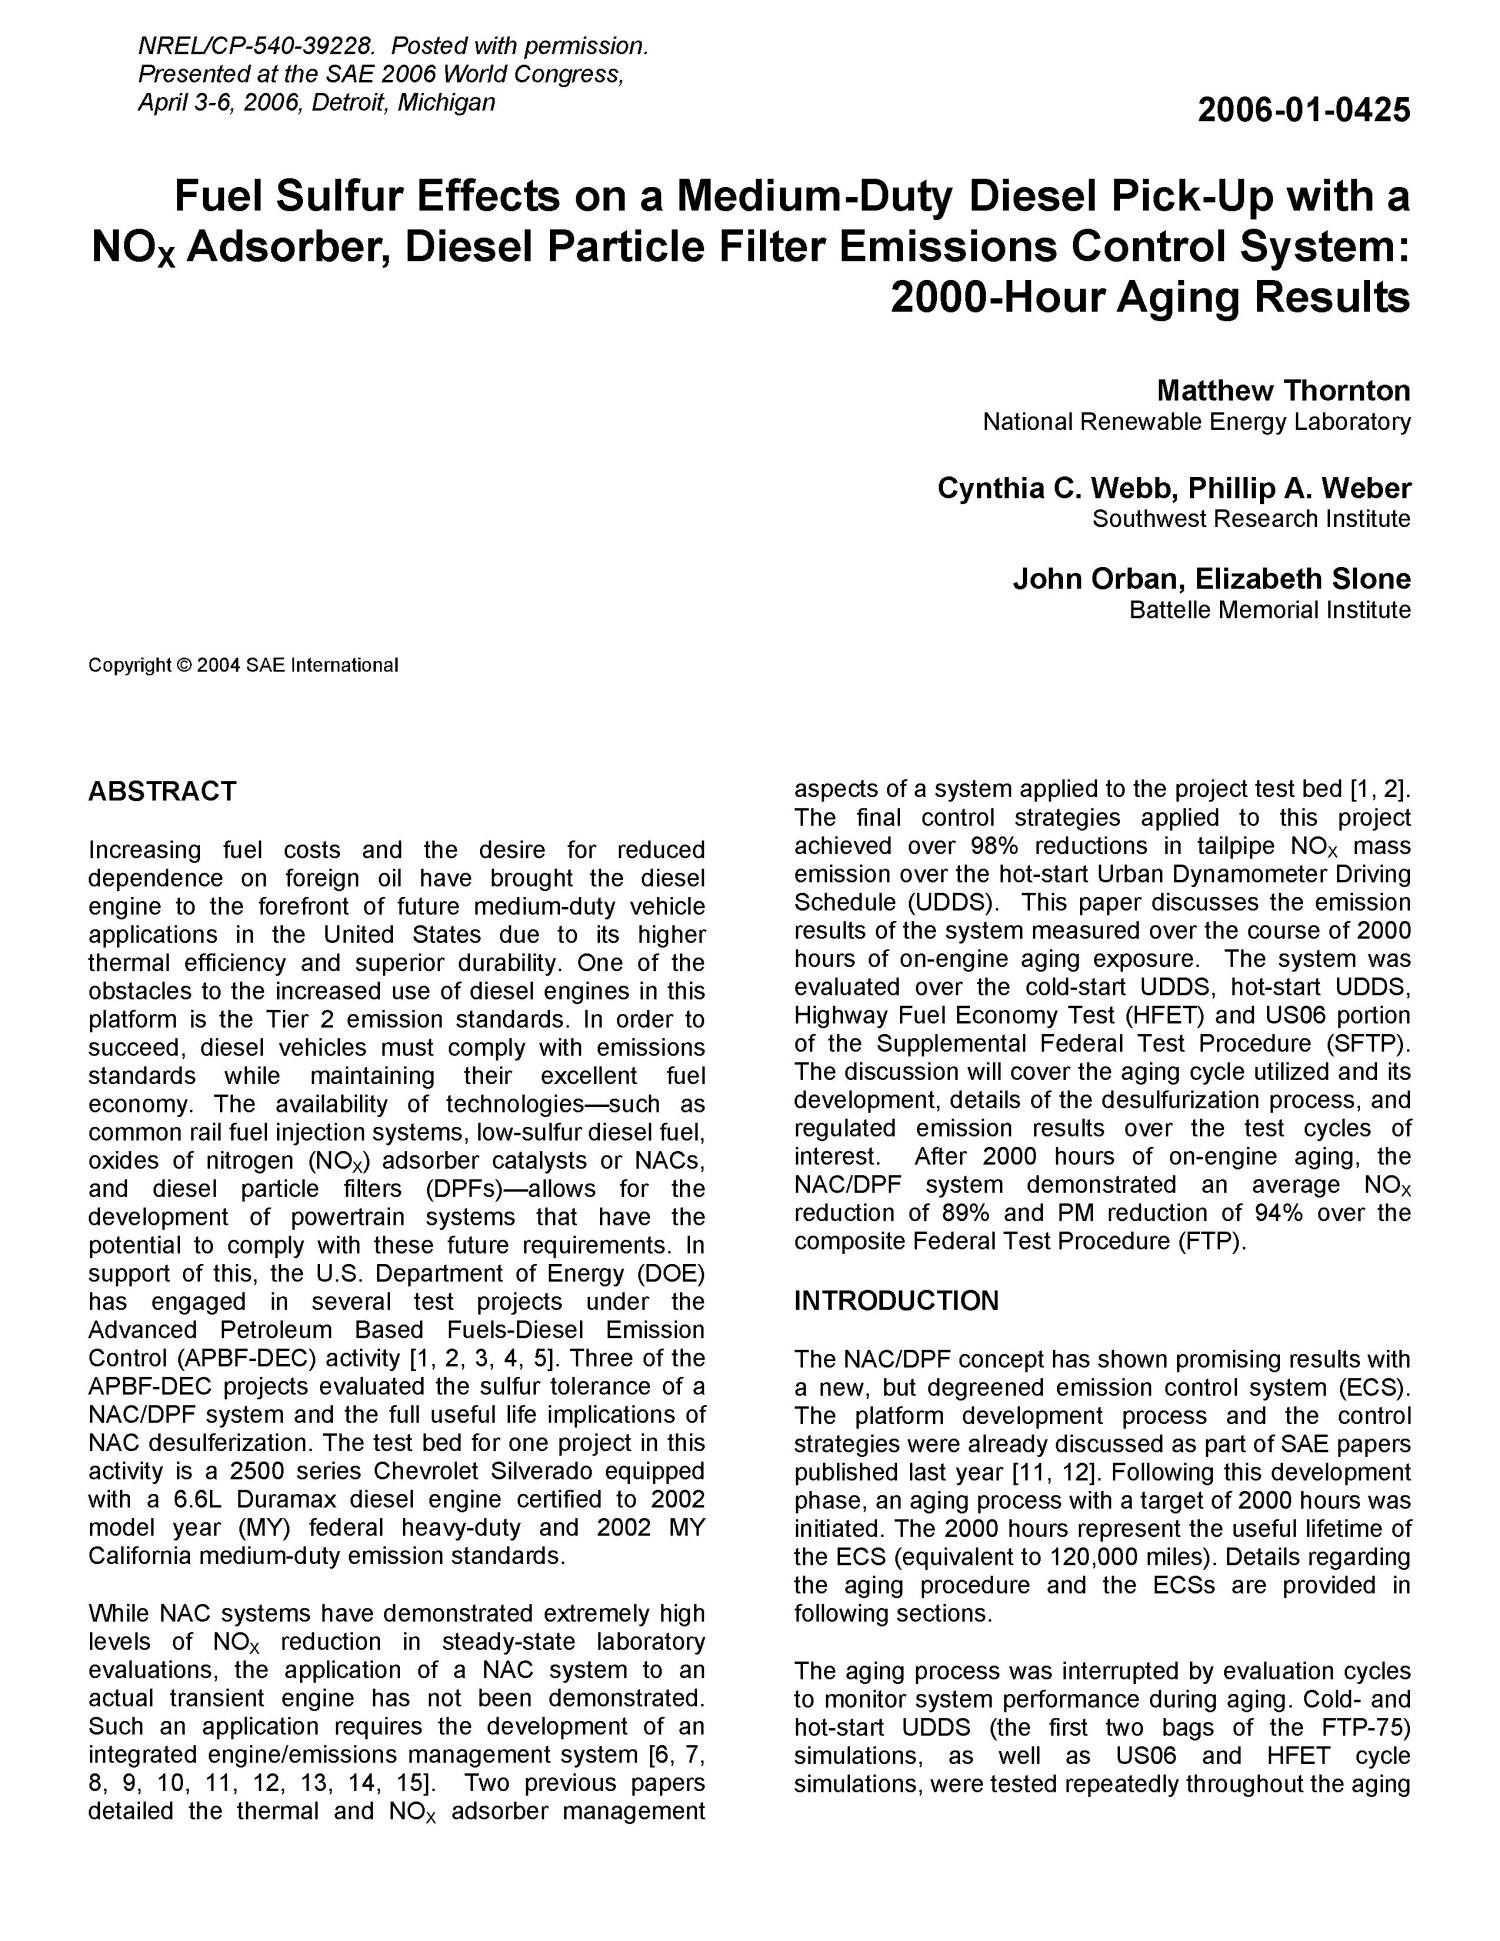 Fuel Sulfur Effects On A Medium Duty Diesel Pick Up With Nox Webb Filters Adsorber Particle Filter Emissions Control System 2000 Hour Aging Results Digital